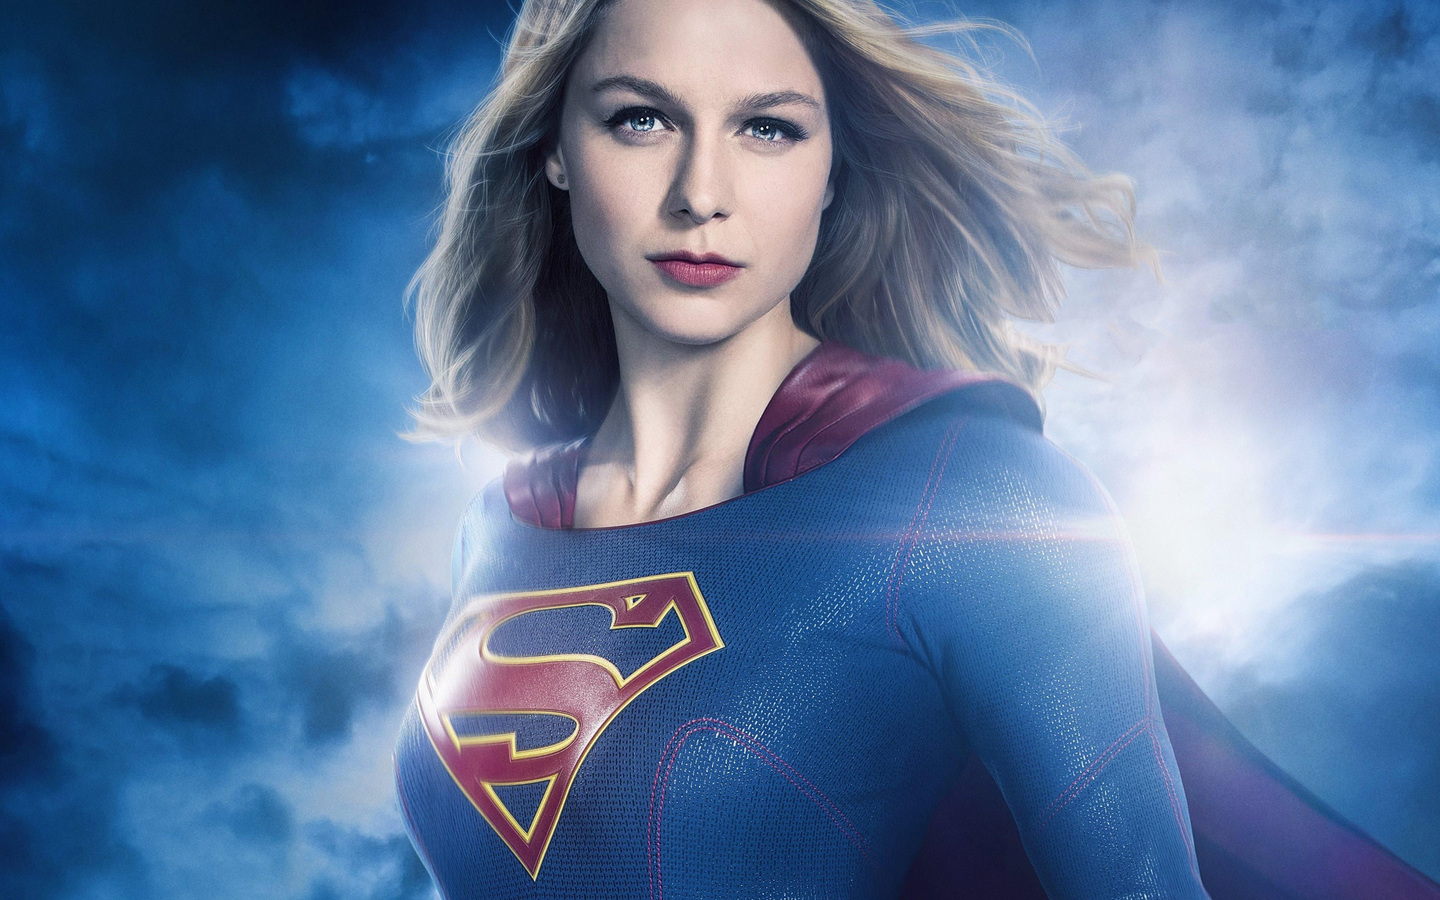 Wallpaper Melissa Benoist, Supergirl, 4K, TV Series, #3123